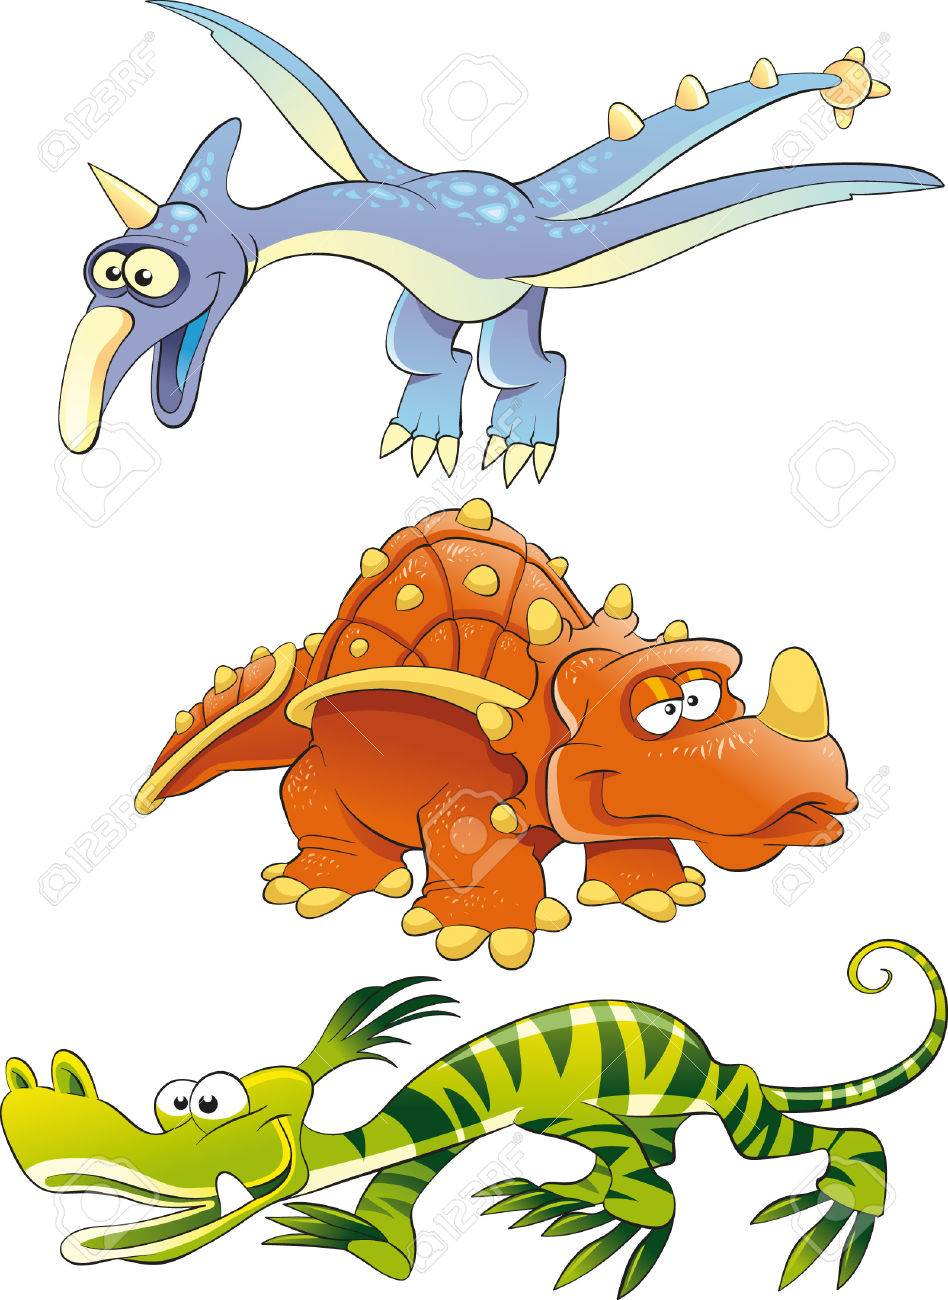 Monsters Dinosaurs Stock Vector - 5423316